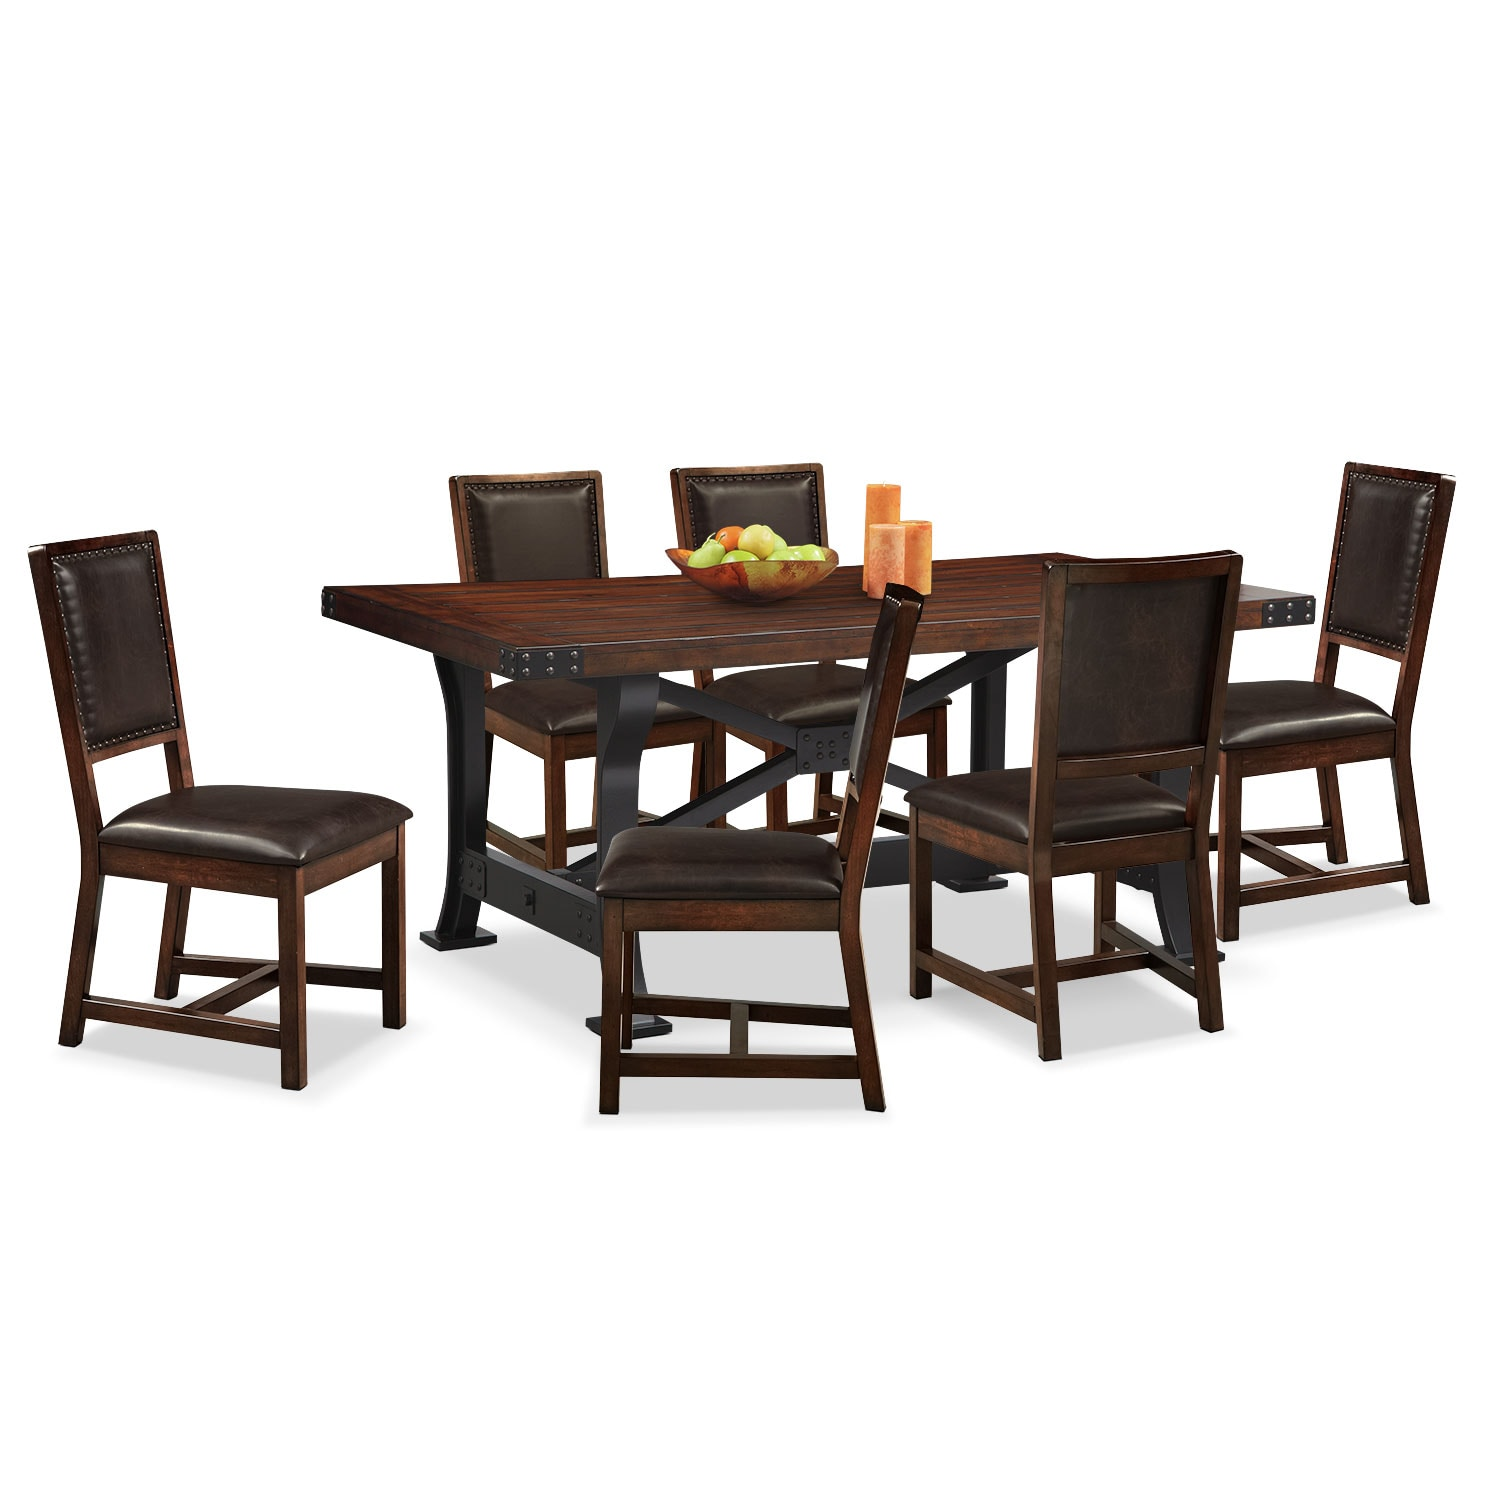 Newcastle Table And 6 Chairs Mahogany American Signature Furniture